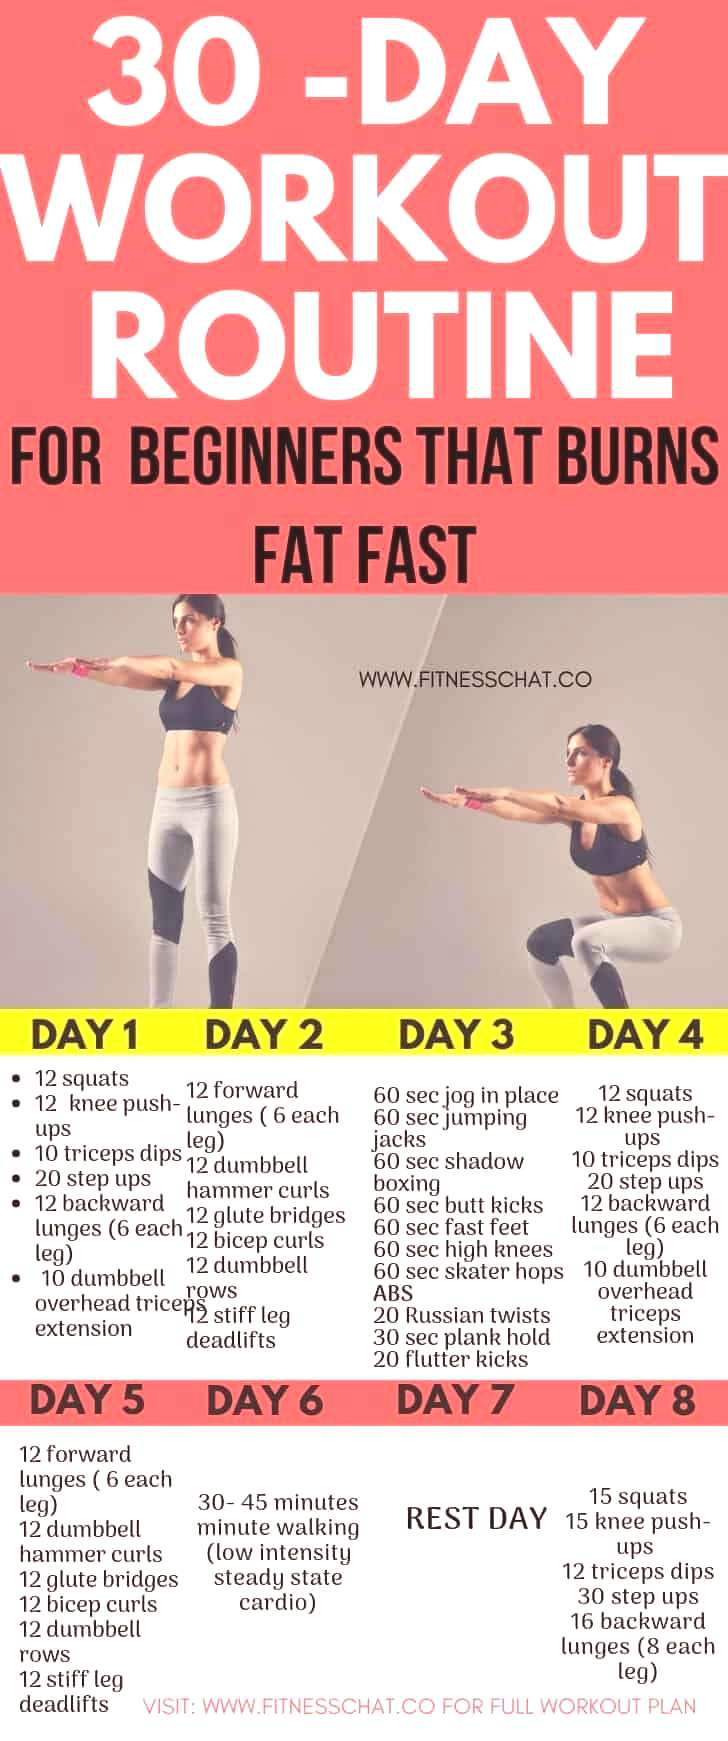 Lose weight fast with this 30-Day Fat Burning Workout Routines for Beginners. Join the 30 day chall